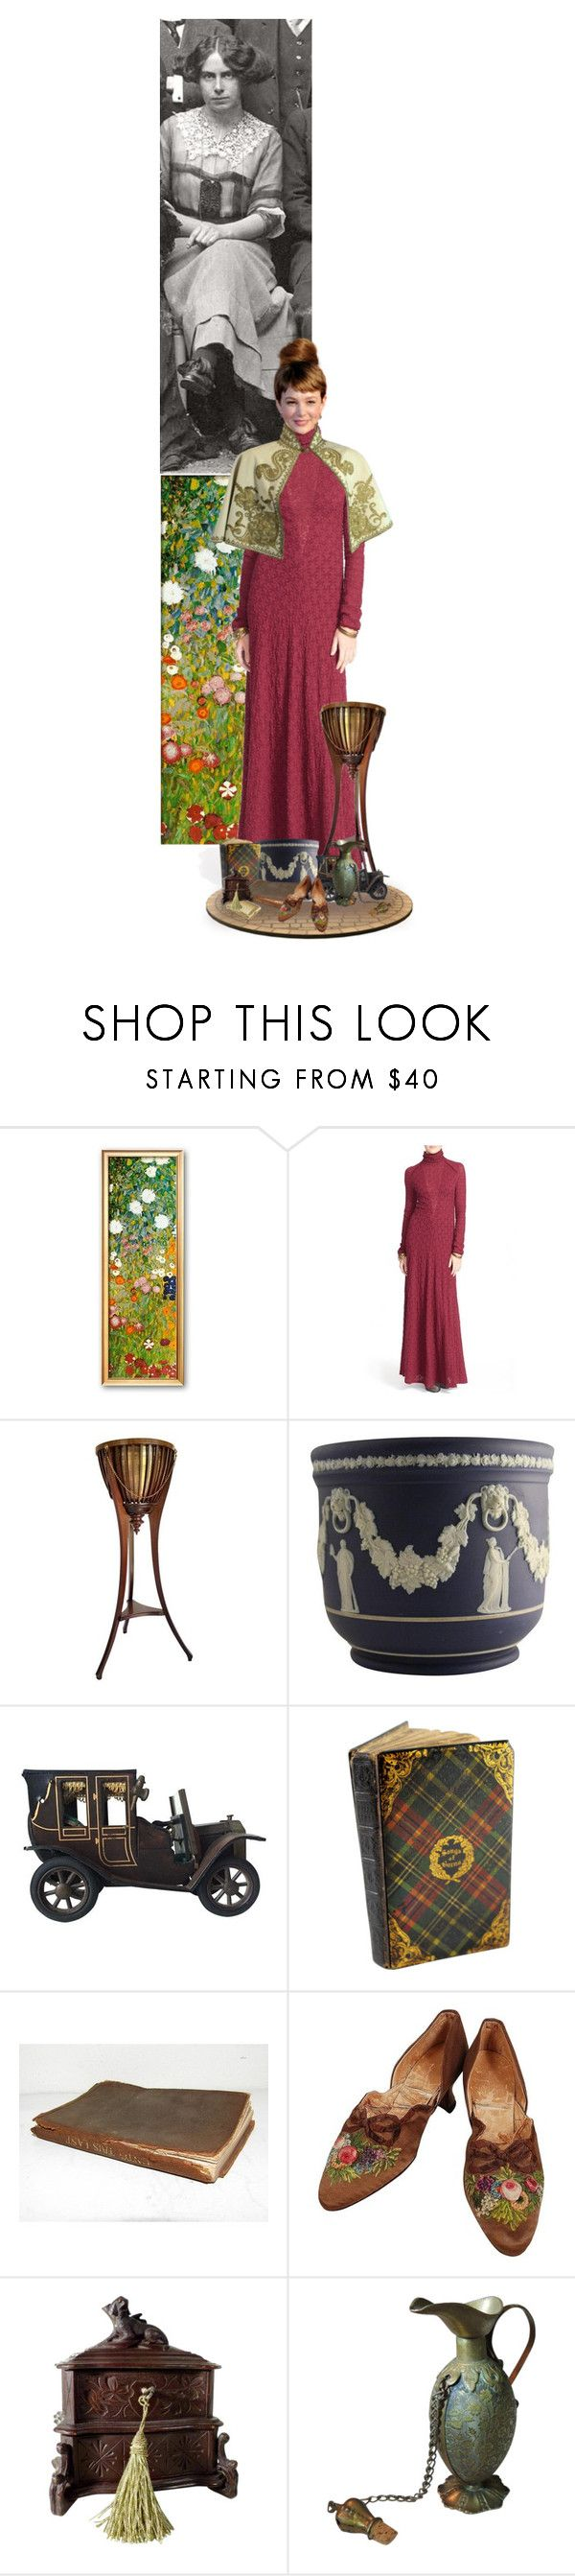 """Toni Wolff"" by sh0shan ❤ liked on Polyvore featuring Free People, Wedgwood, MACBETH and home office"